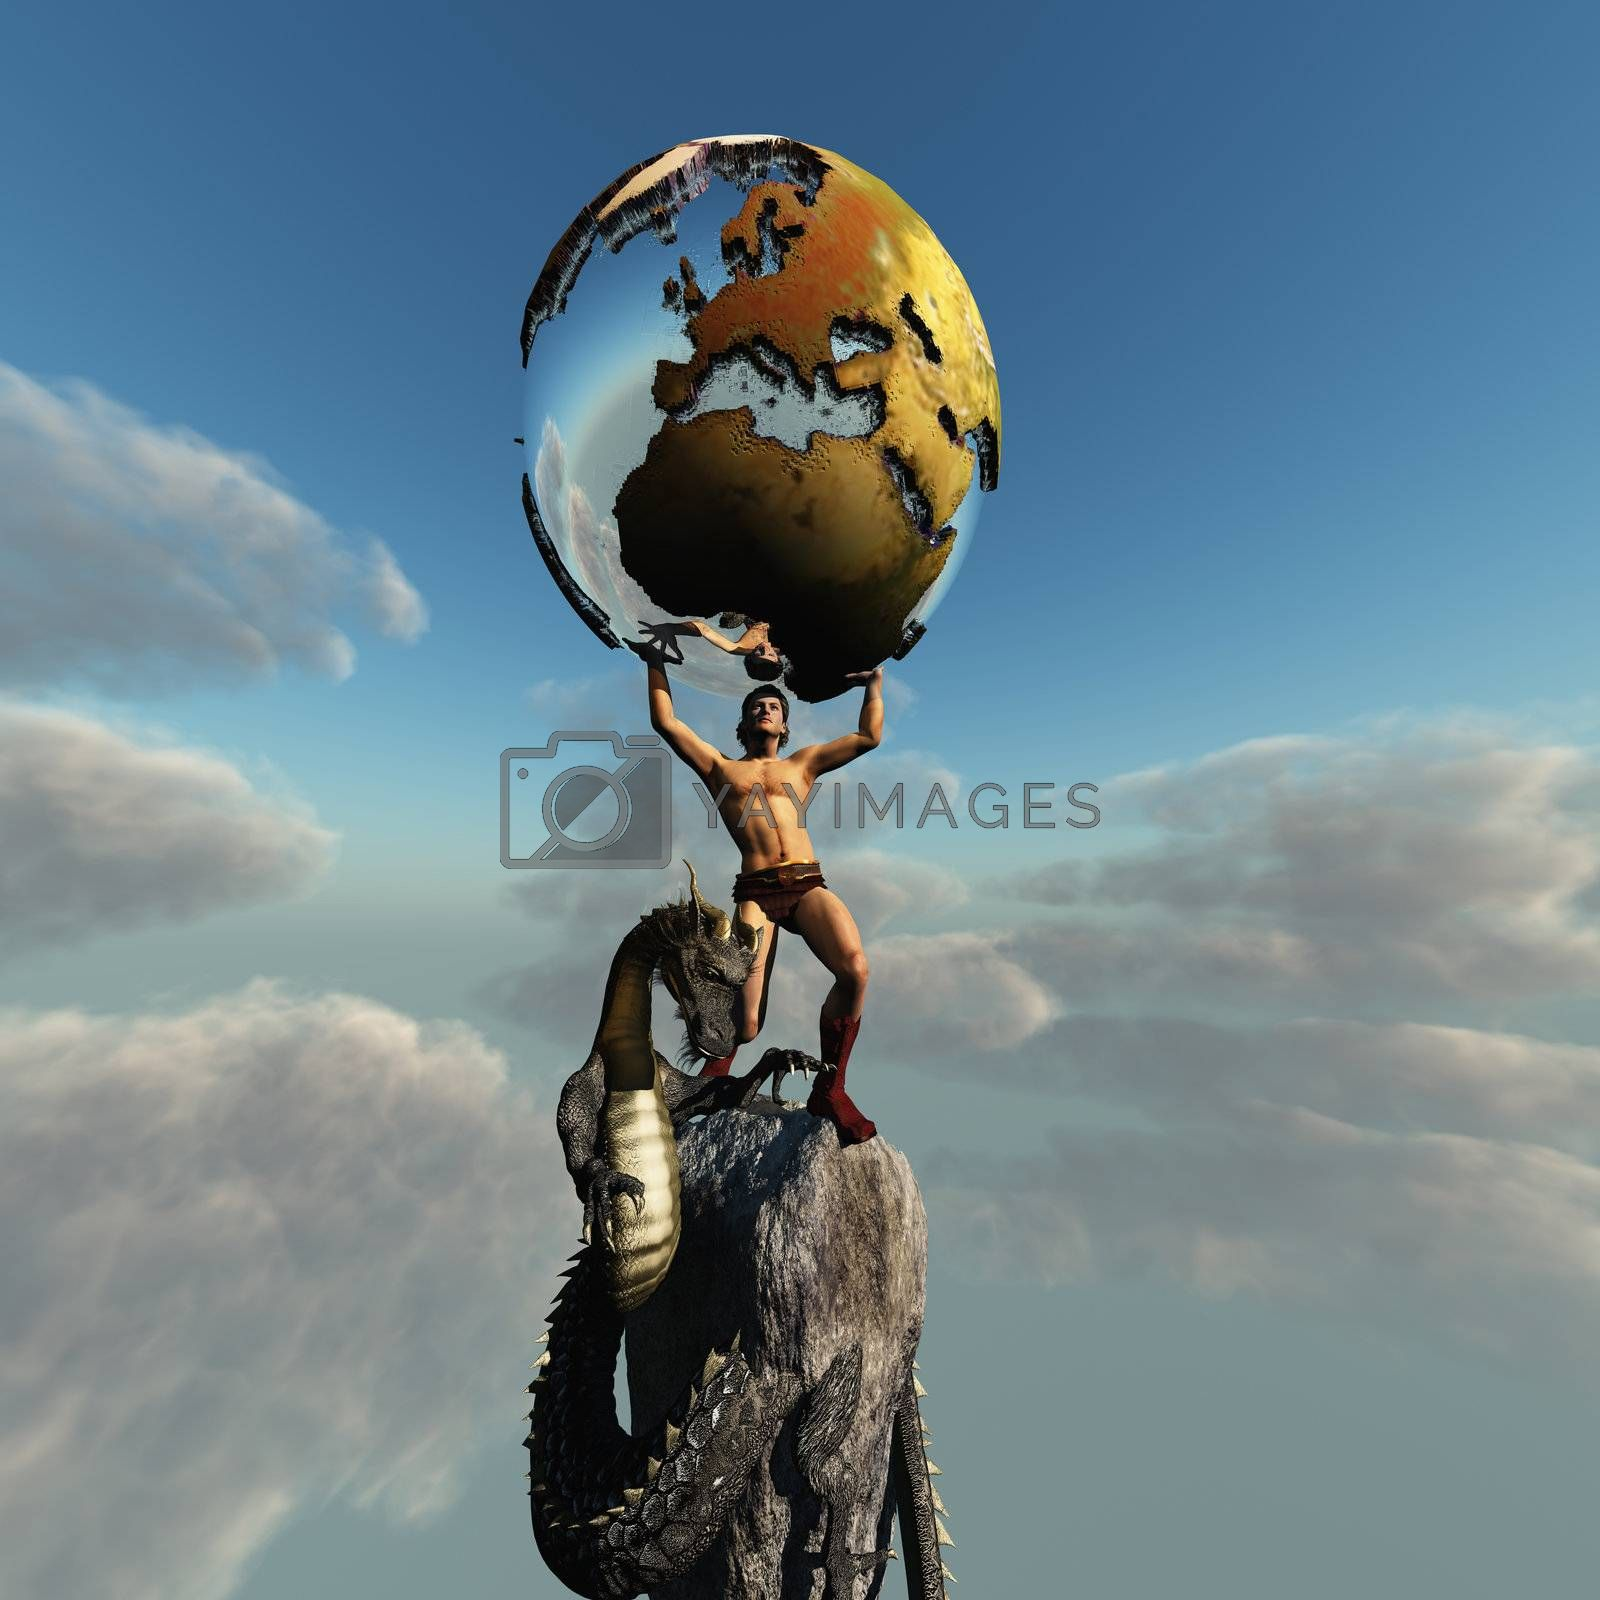 Atlas holds the Earth. The dragon represents the unrest in this part of the world.